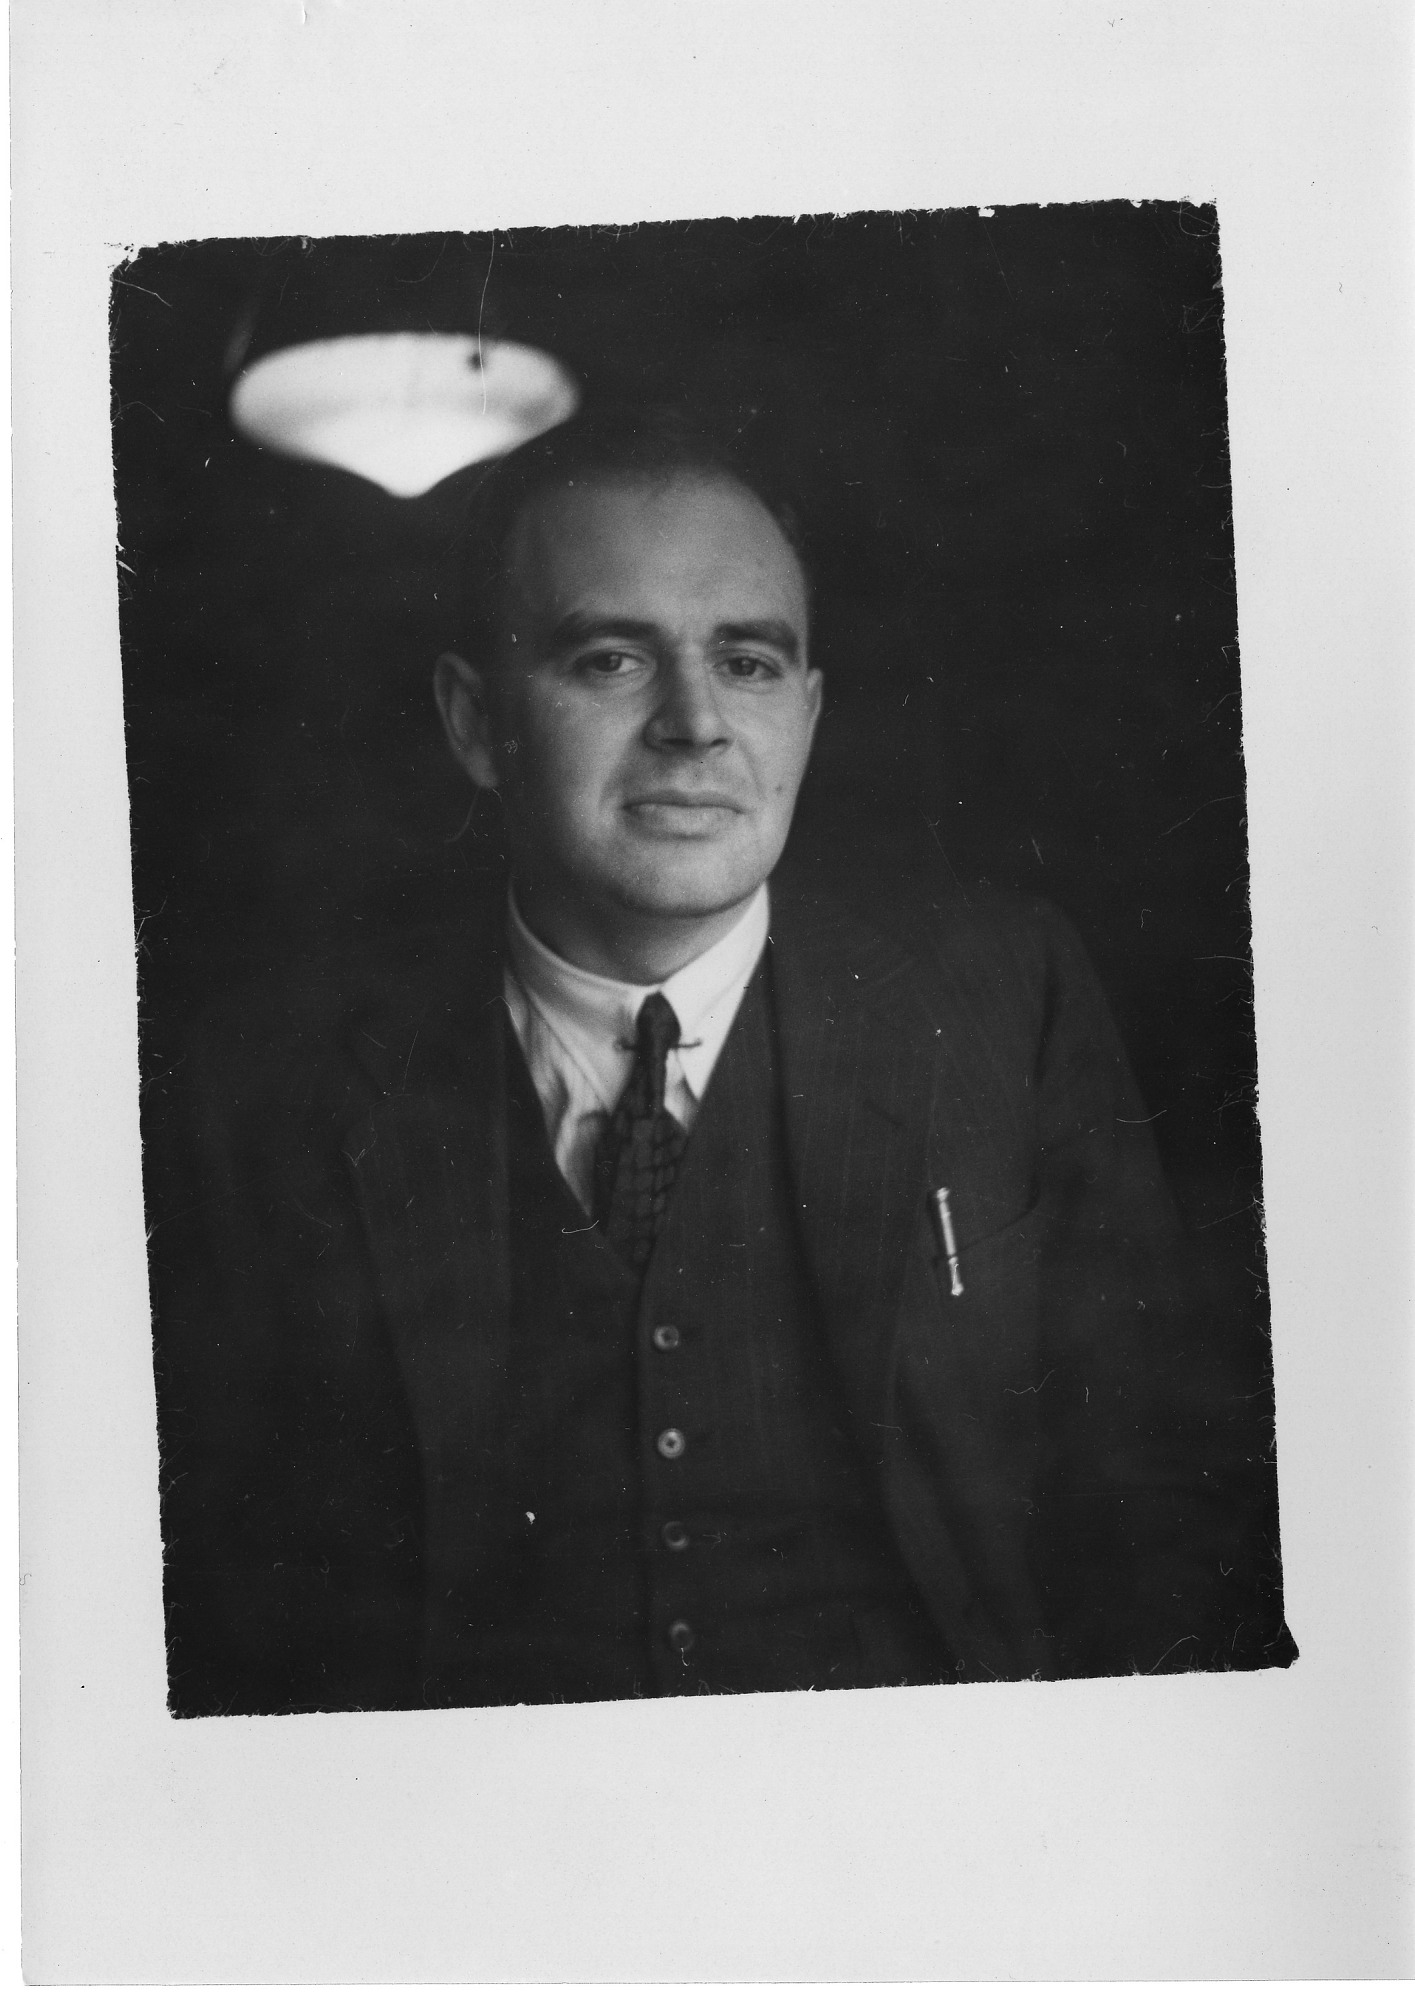 Donald Caley, 1935, Smithsonian Institution Archives, SIA Acc. 90-105 [SIA2008-0259].